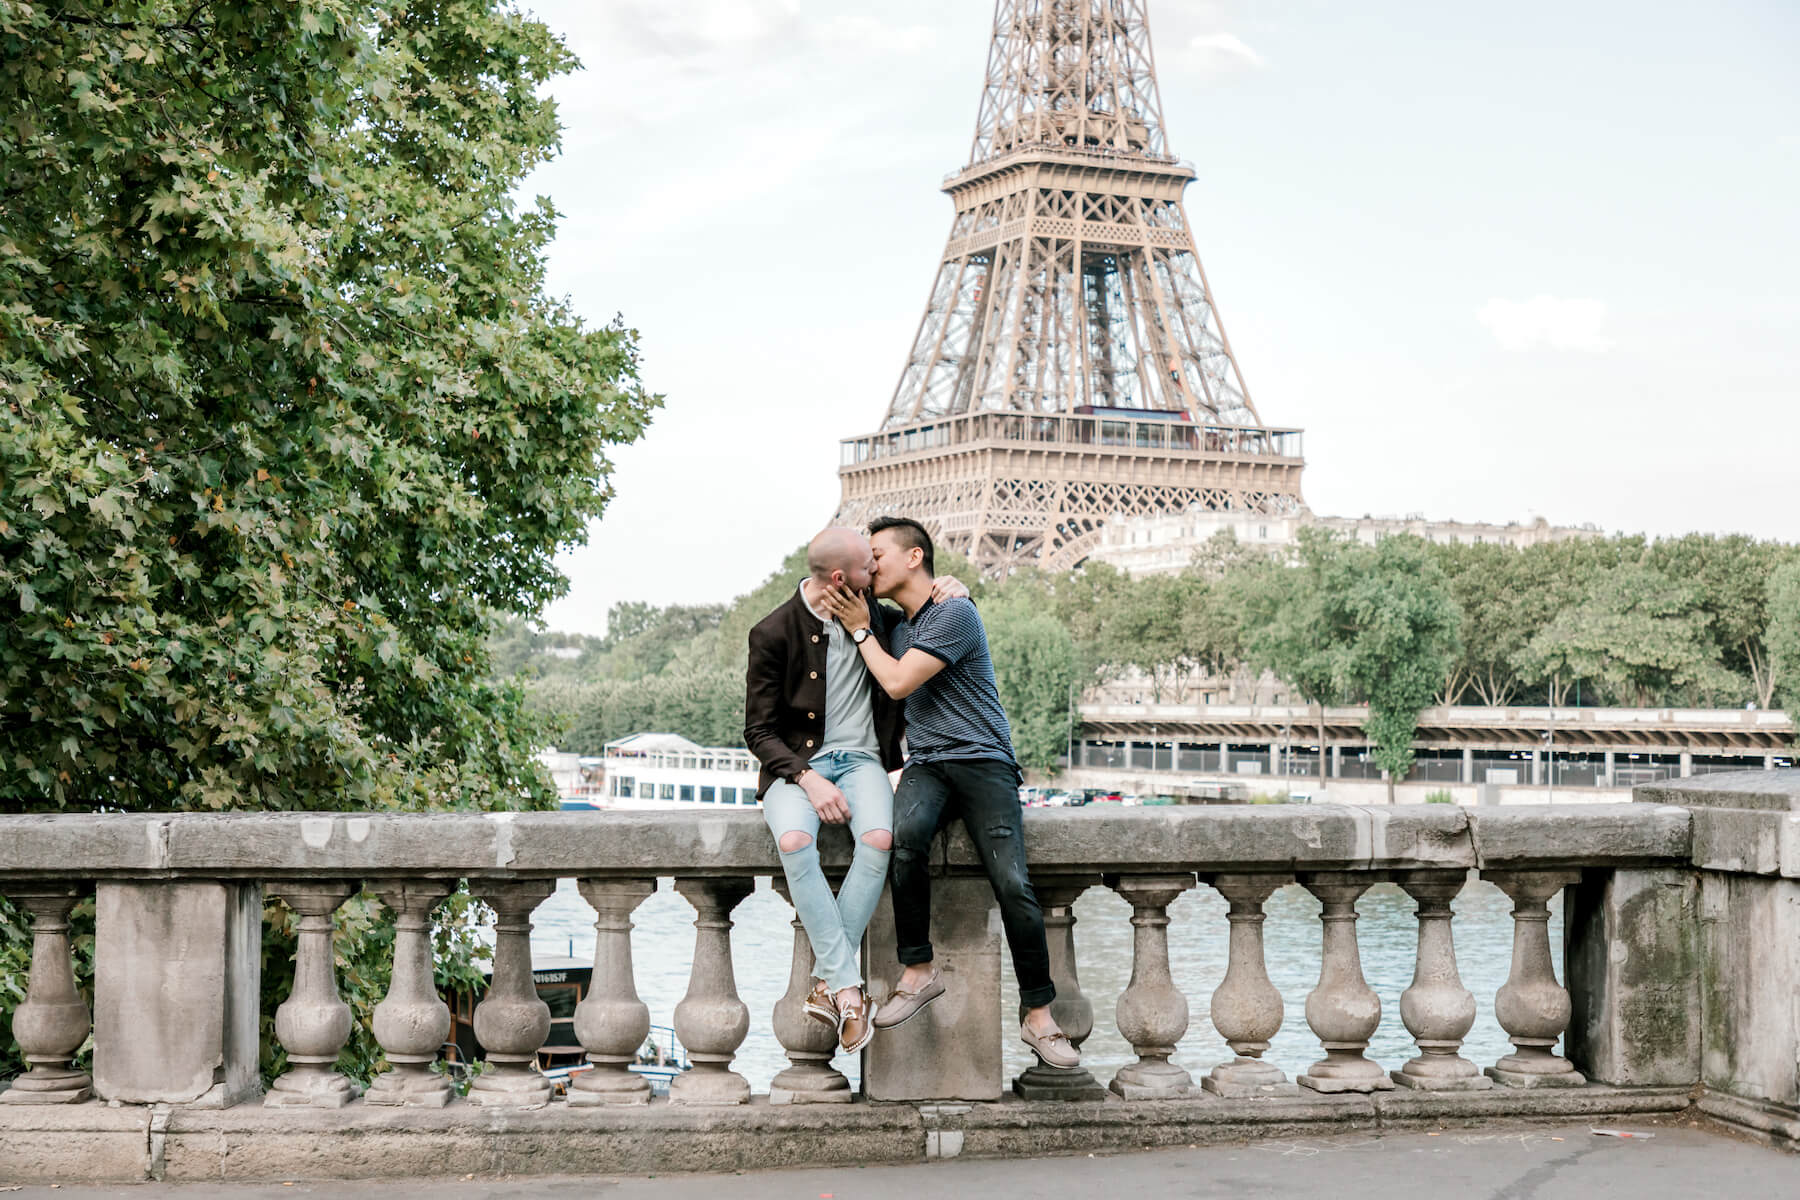 A couple kissing each other in front of the Eiffel Tower in Paris France